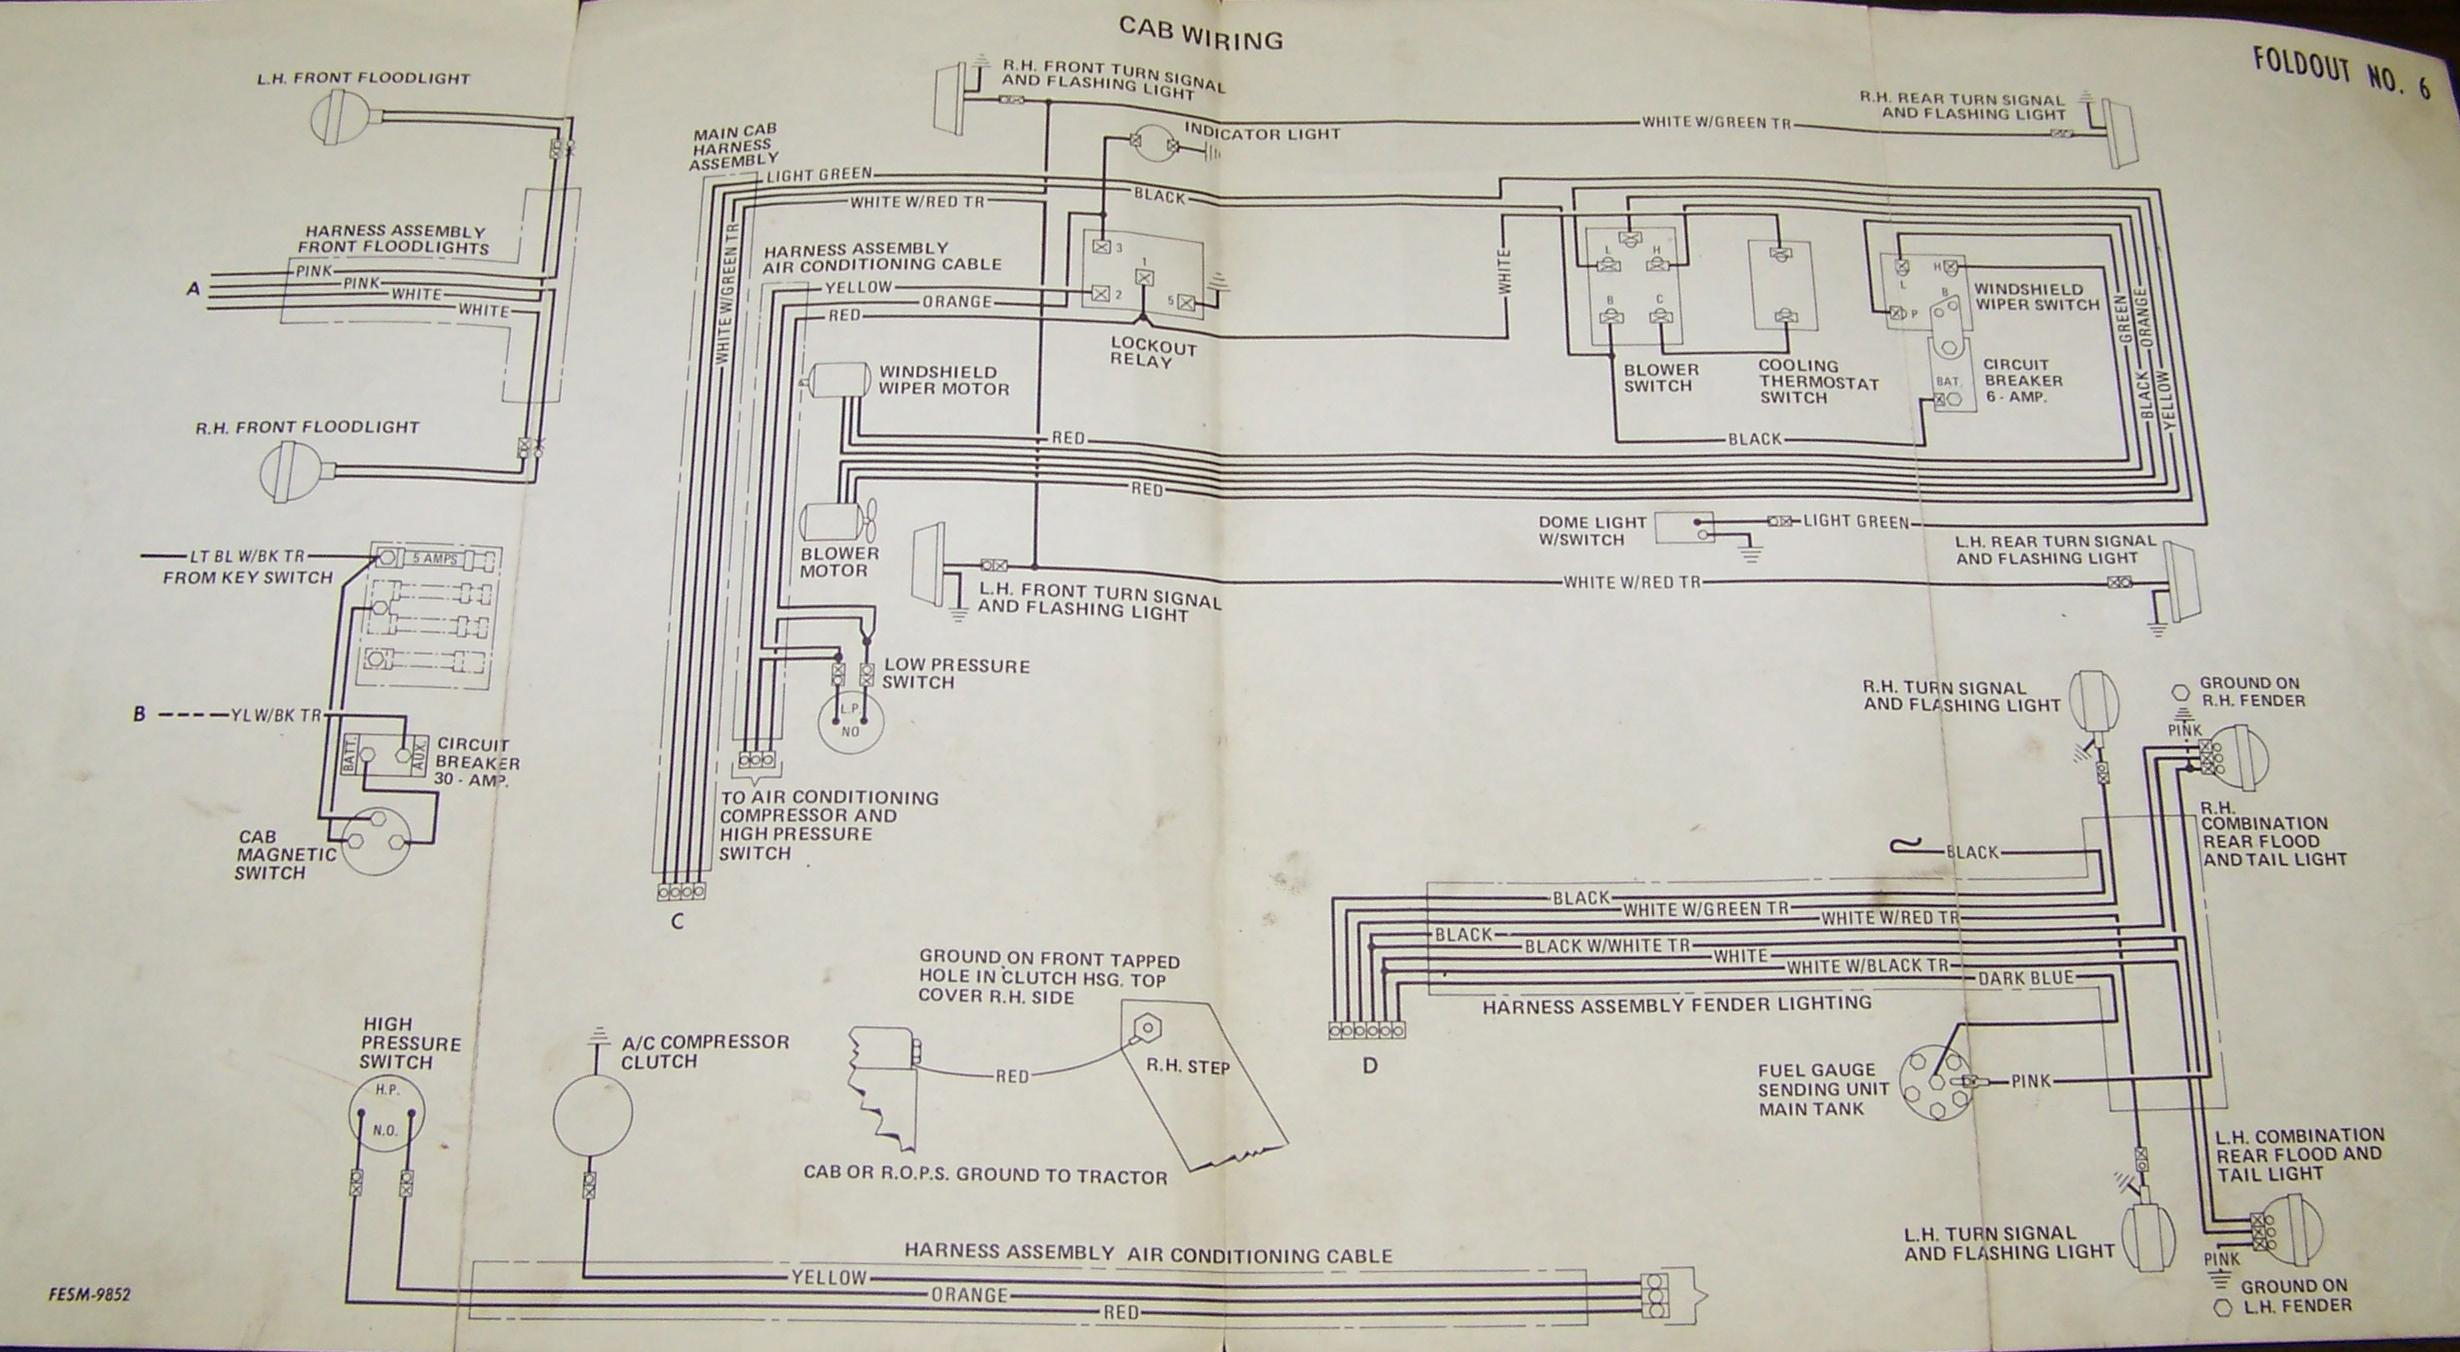 wiring diagram 1486 international tractor 1206 international tractor wiring  wiring diagram 966 International Tractor 806 International Tractor